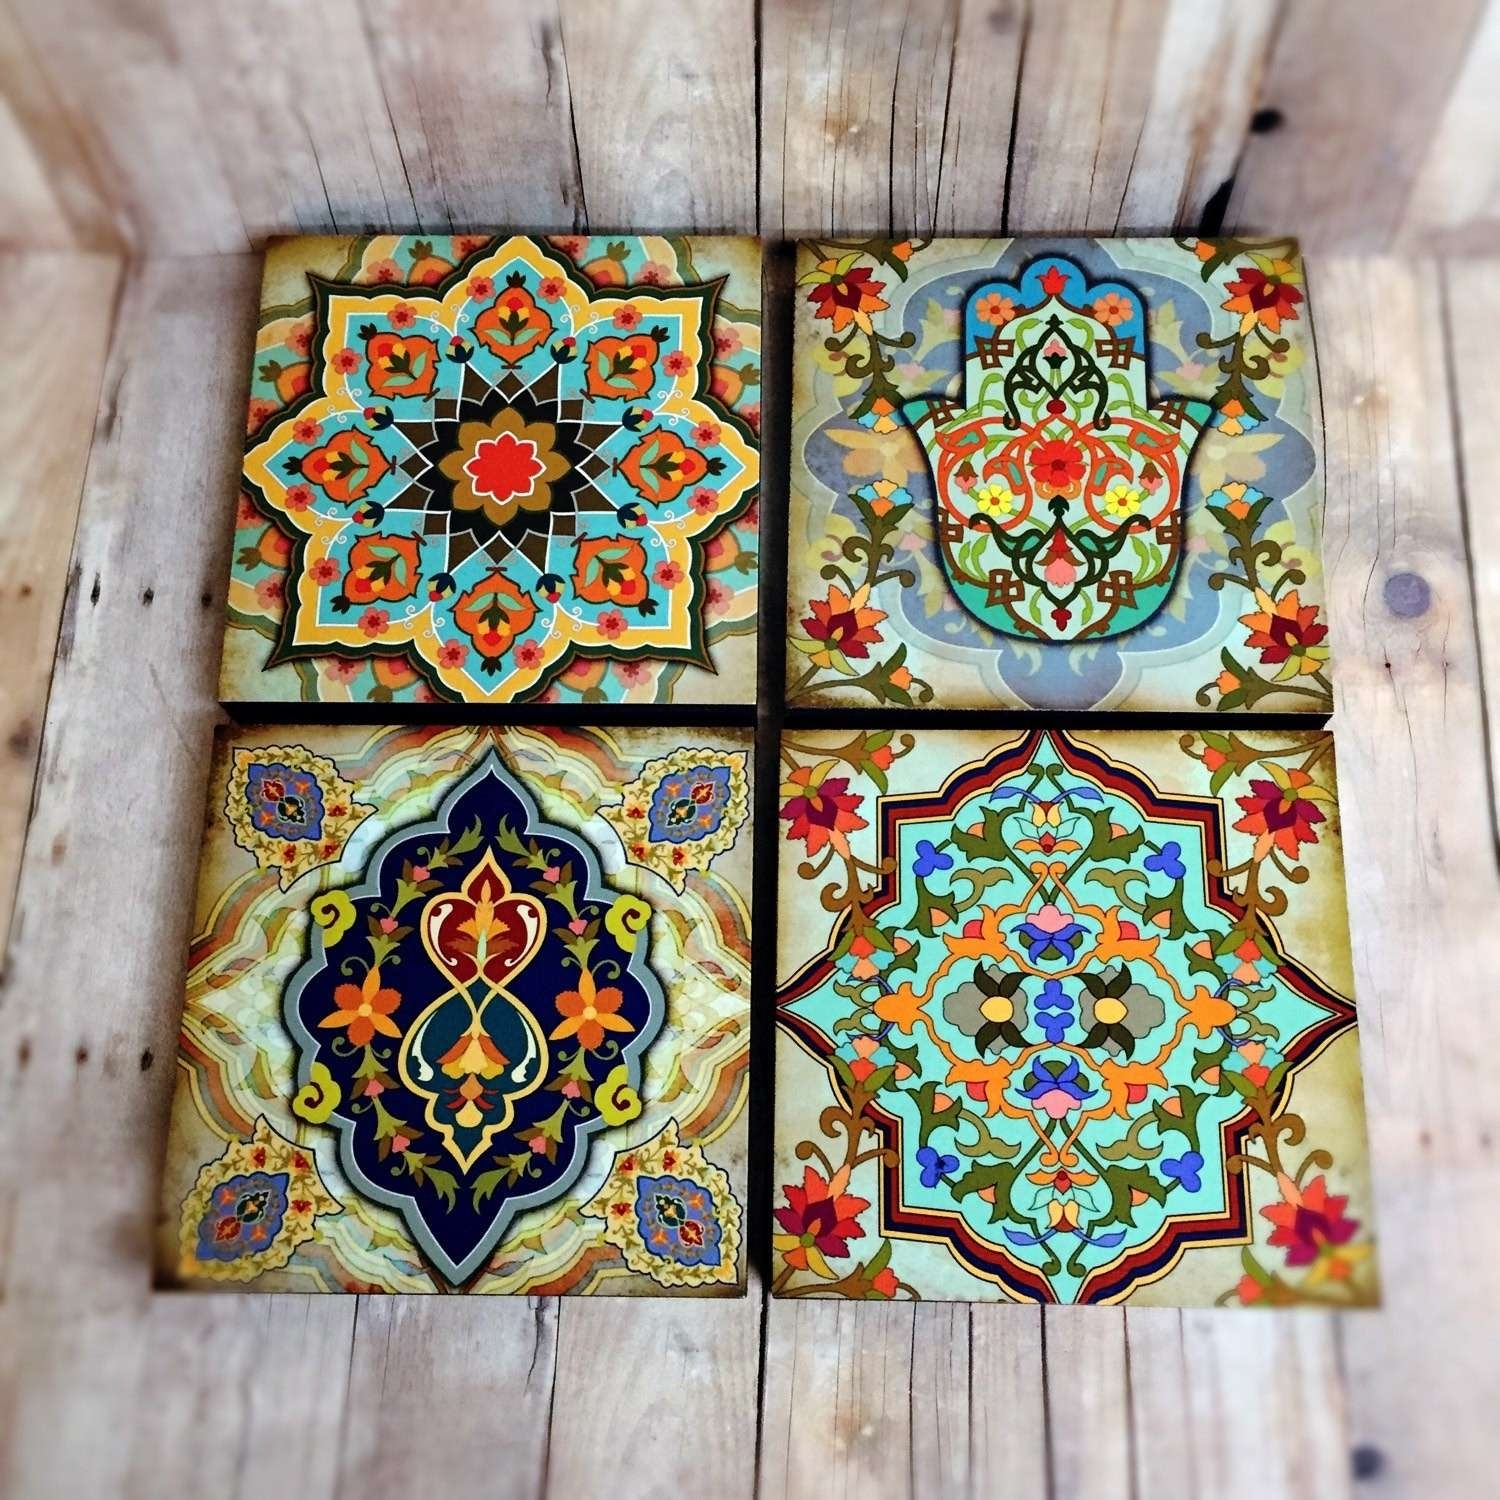 Moroccan Vintage Moroccan Wall Art – Wall Decoration And Wall Art Ideas Regarding Newest Moroccan Wall Art (View 11 of 20)